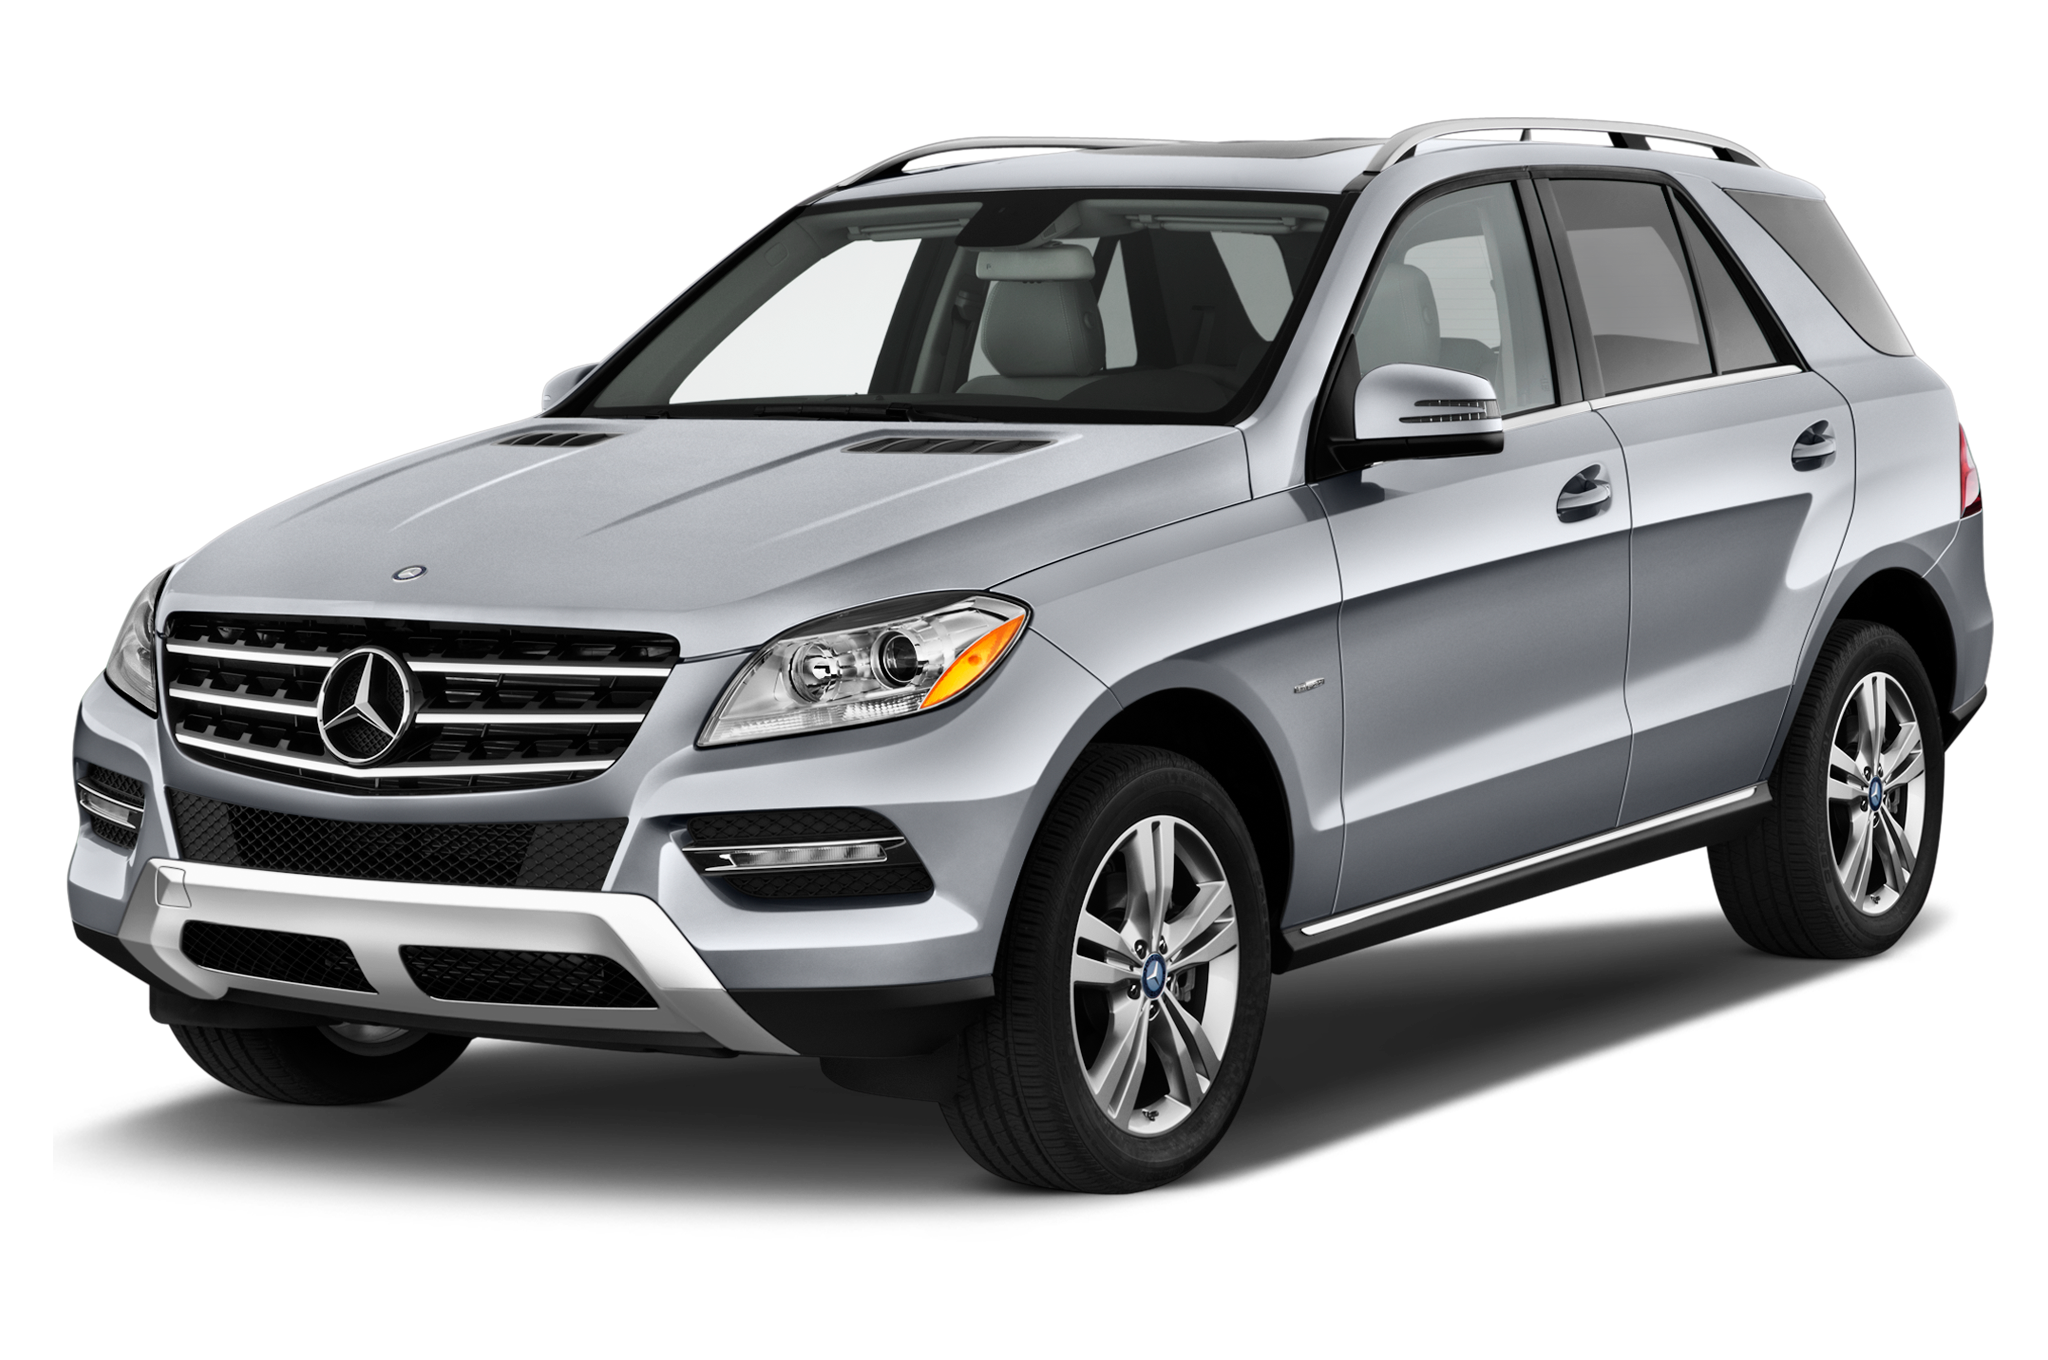 2015 mercedes benz ml400 and ml250 bluetec join lineup. Black Bedroom Furniture Sets. Home Design Ideas